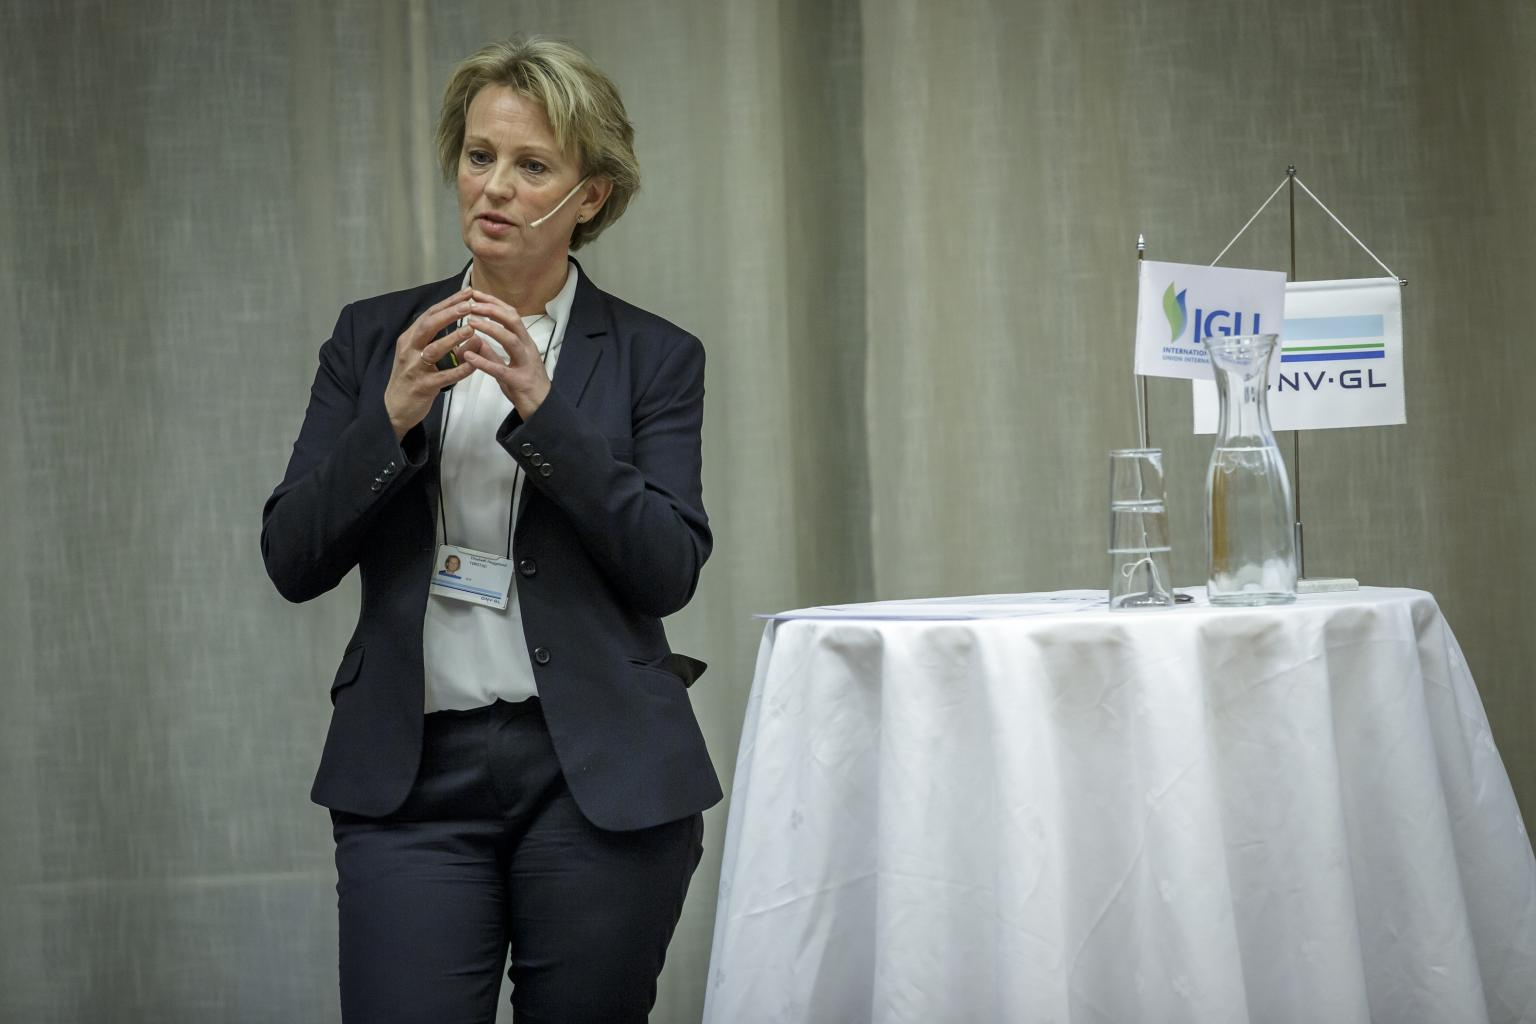 """When planning for the next 30 years, gas should play an important role."" - Elisabeth Tørstad, CEO, DNV GL - Oil & Gas"